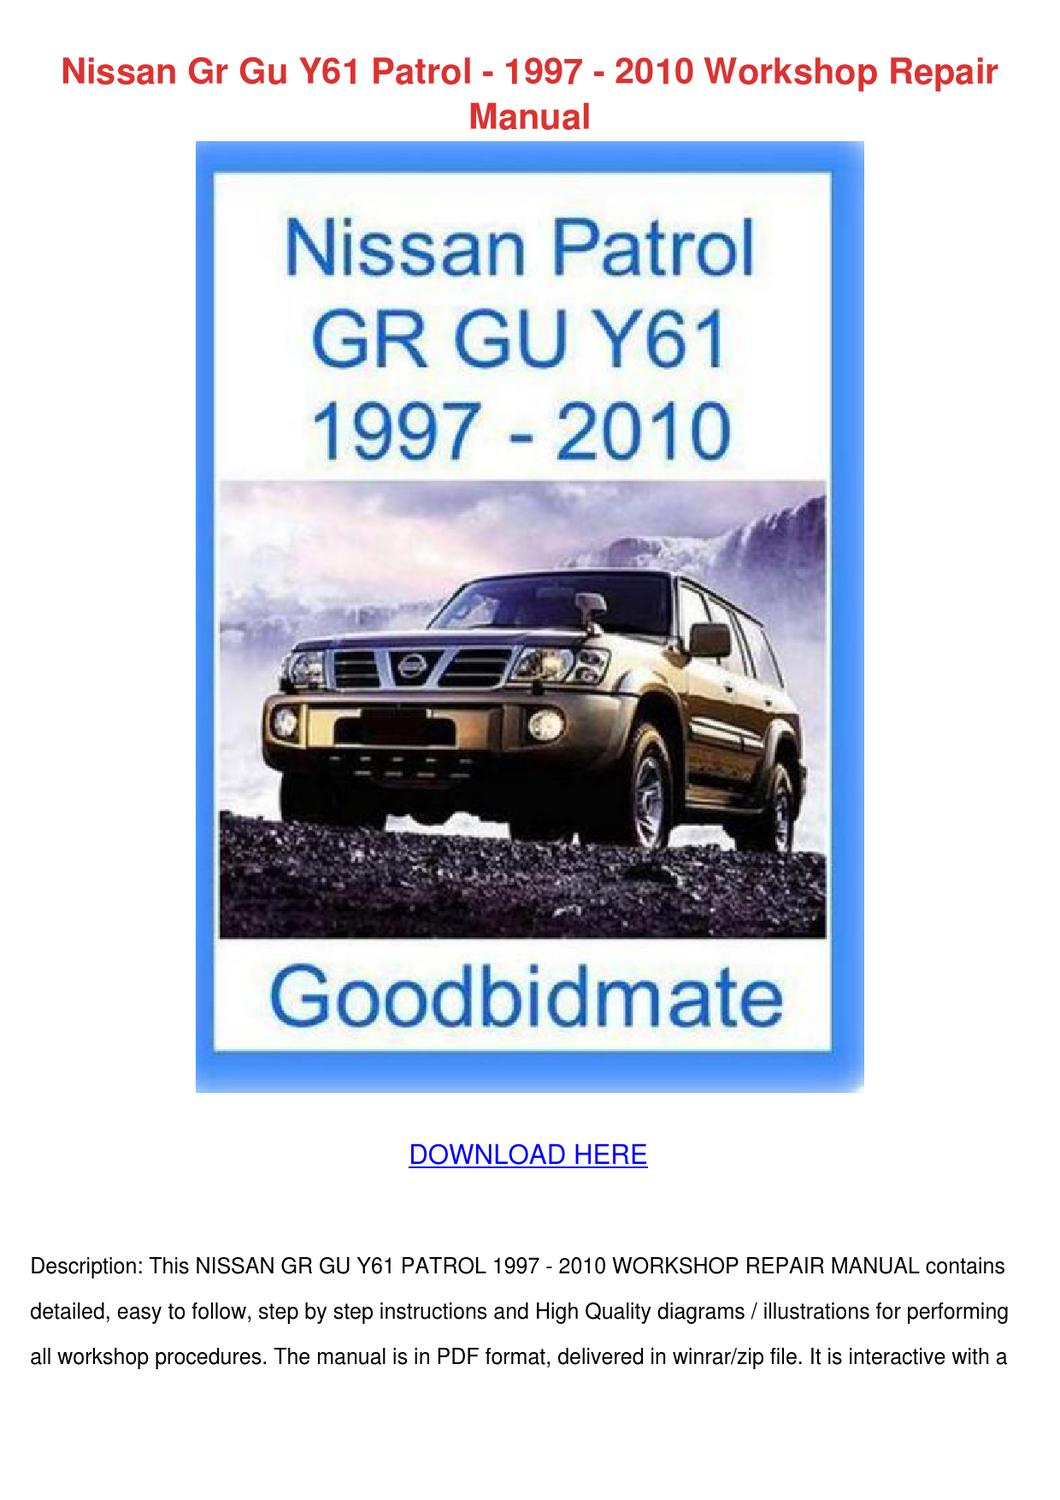 hight resolution of nissan gr gu y61 patrol 1997 2010 workshop re by jordanherr issuunissan y61 wiring diagram